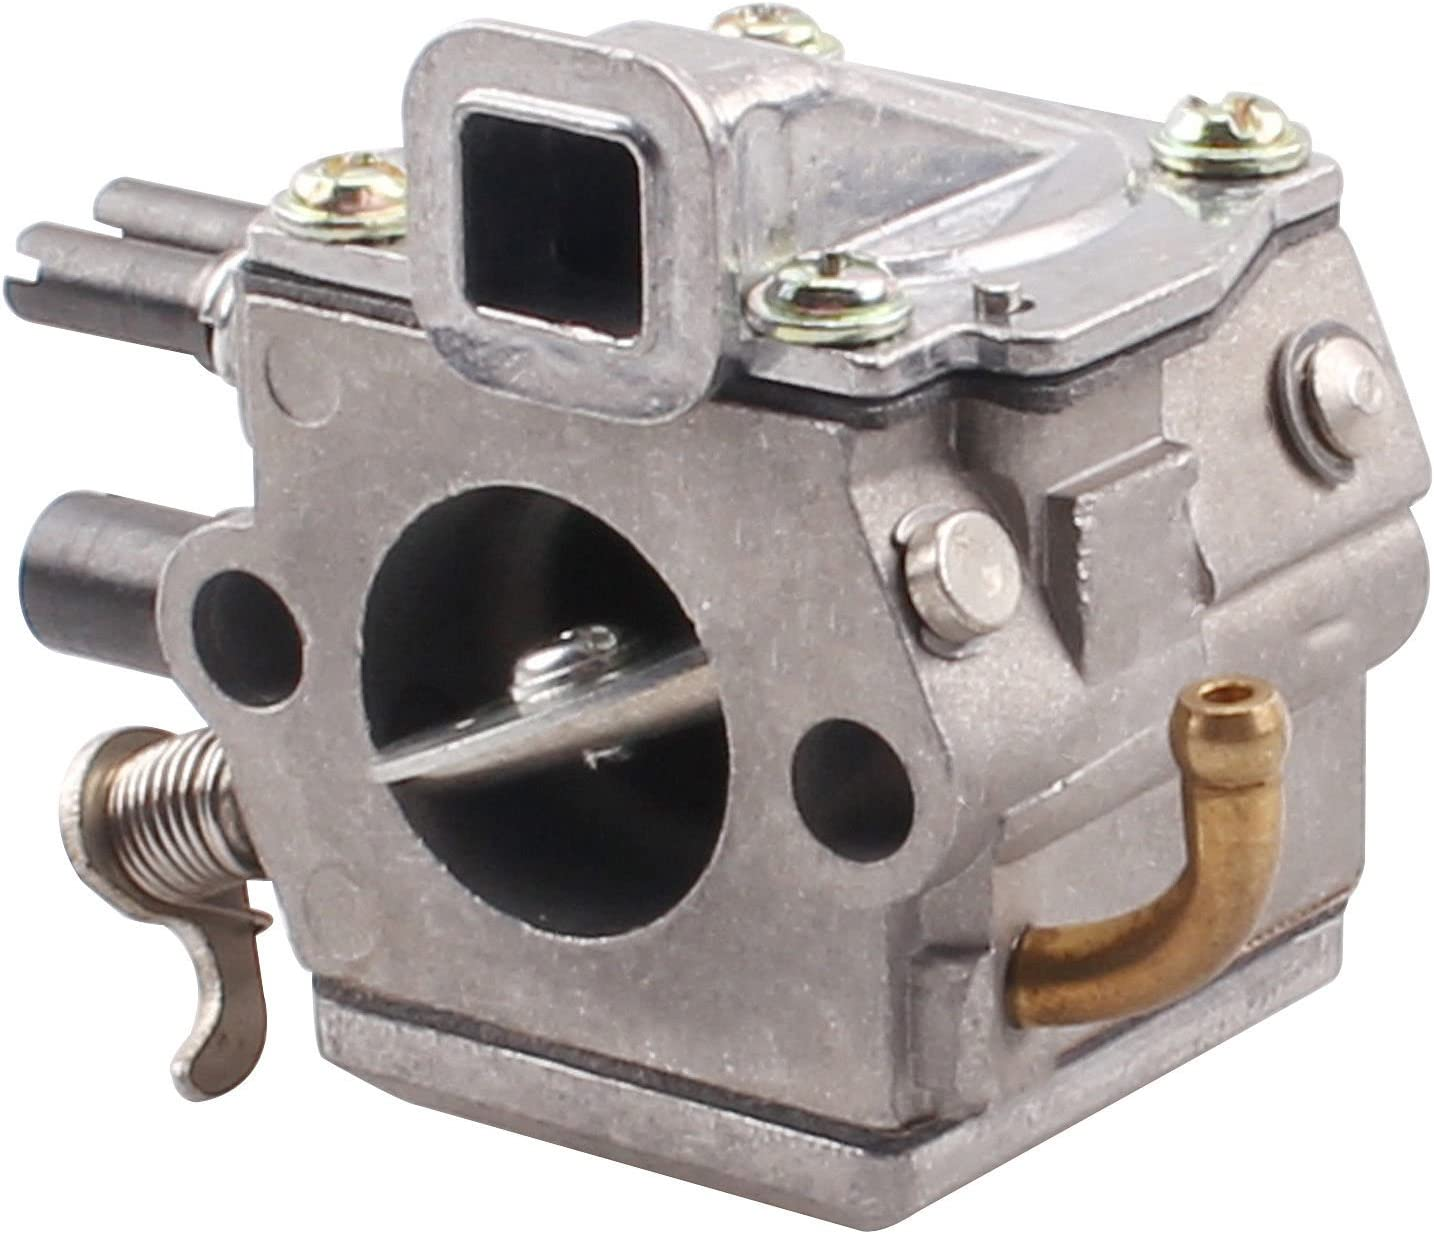 DP ZAMA CARBURETTOR CARB FITS STIHL 034 036 MS340 MS360 CHAINSAW NEW